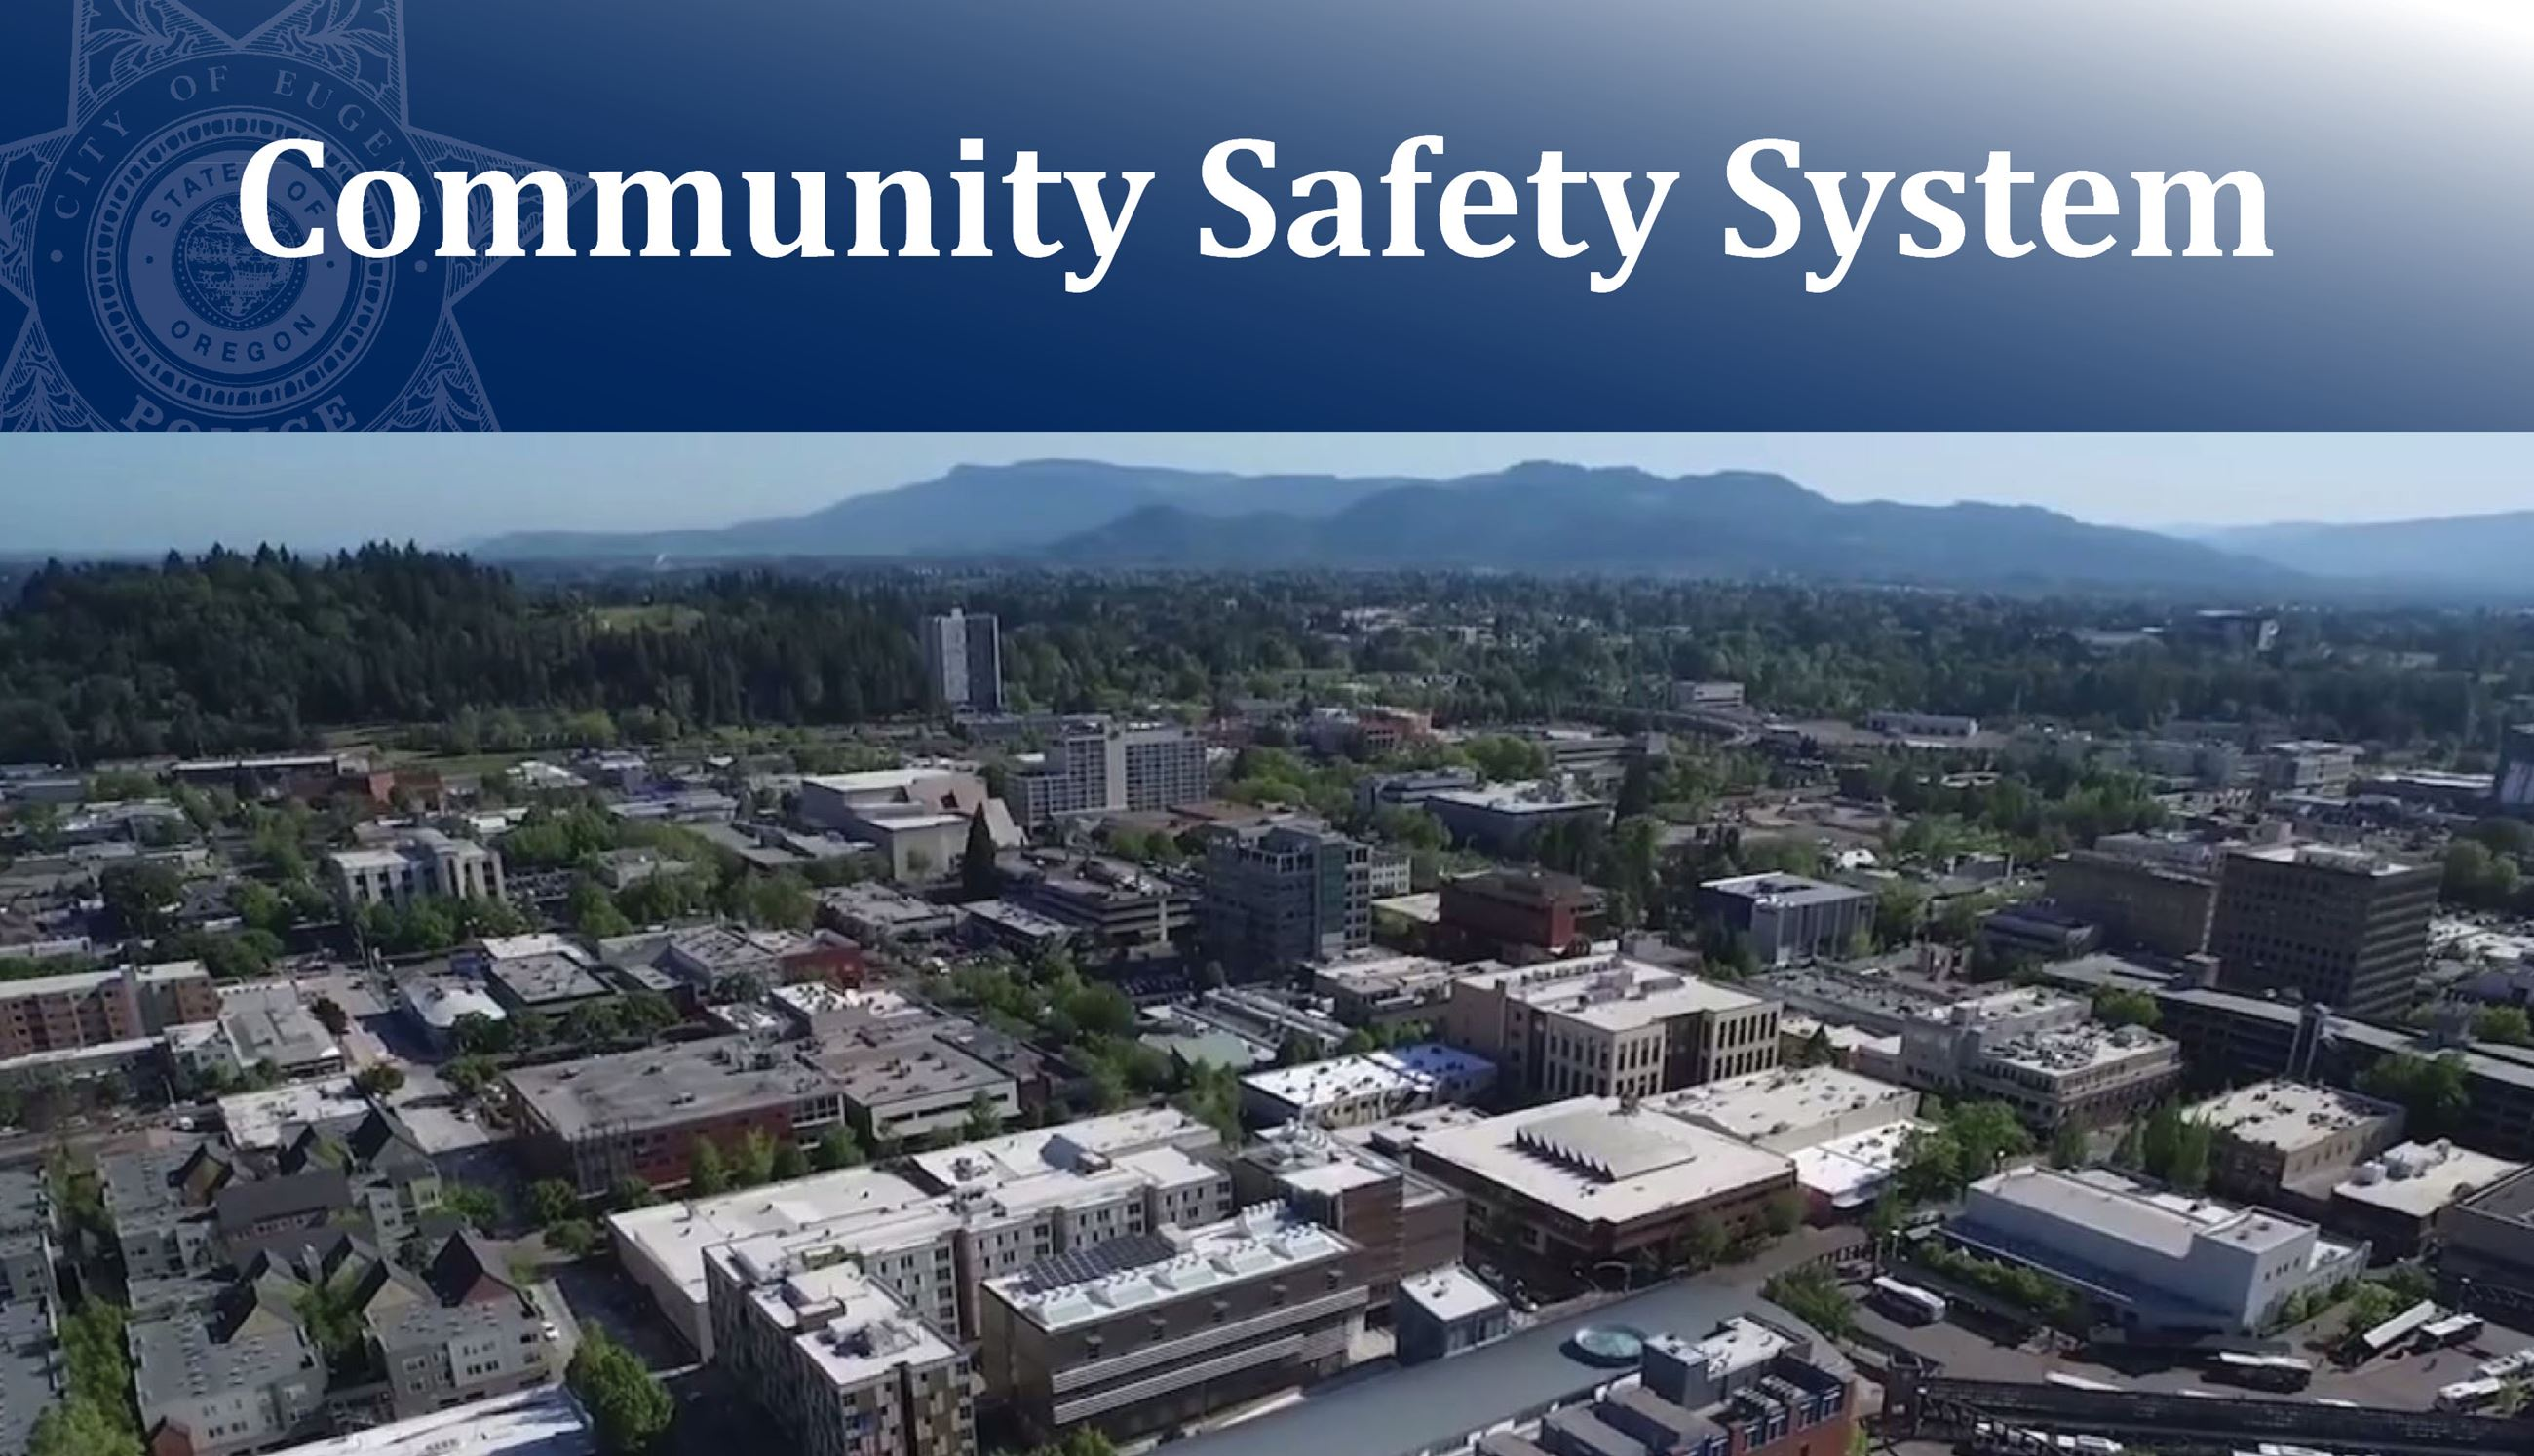 CommunitySafety Opens in new window